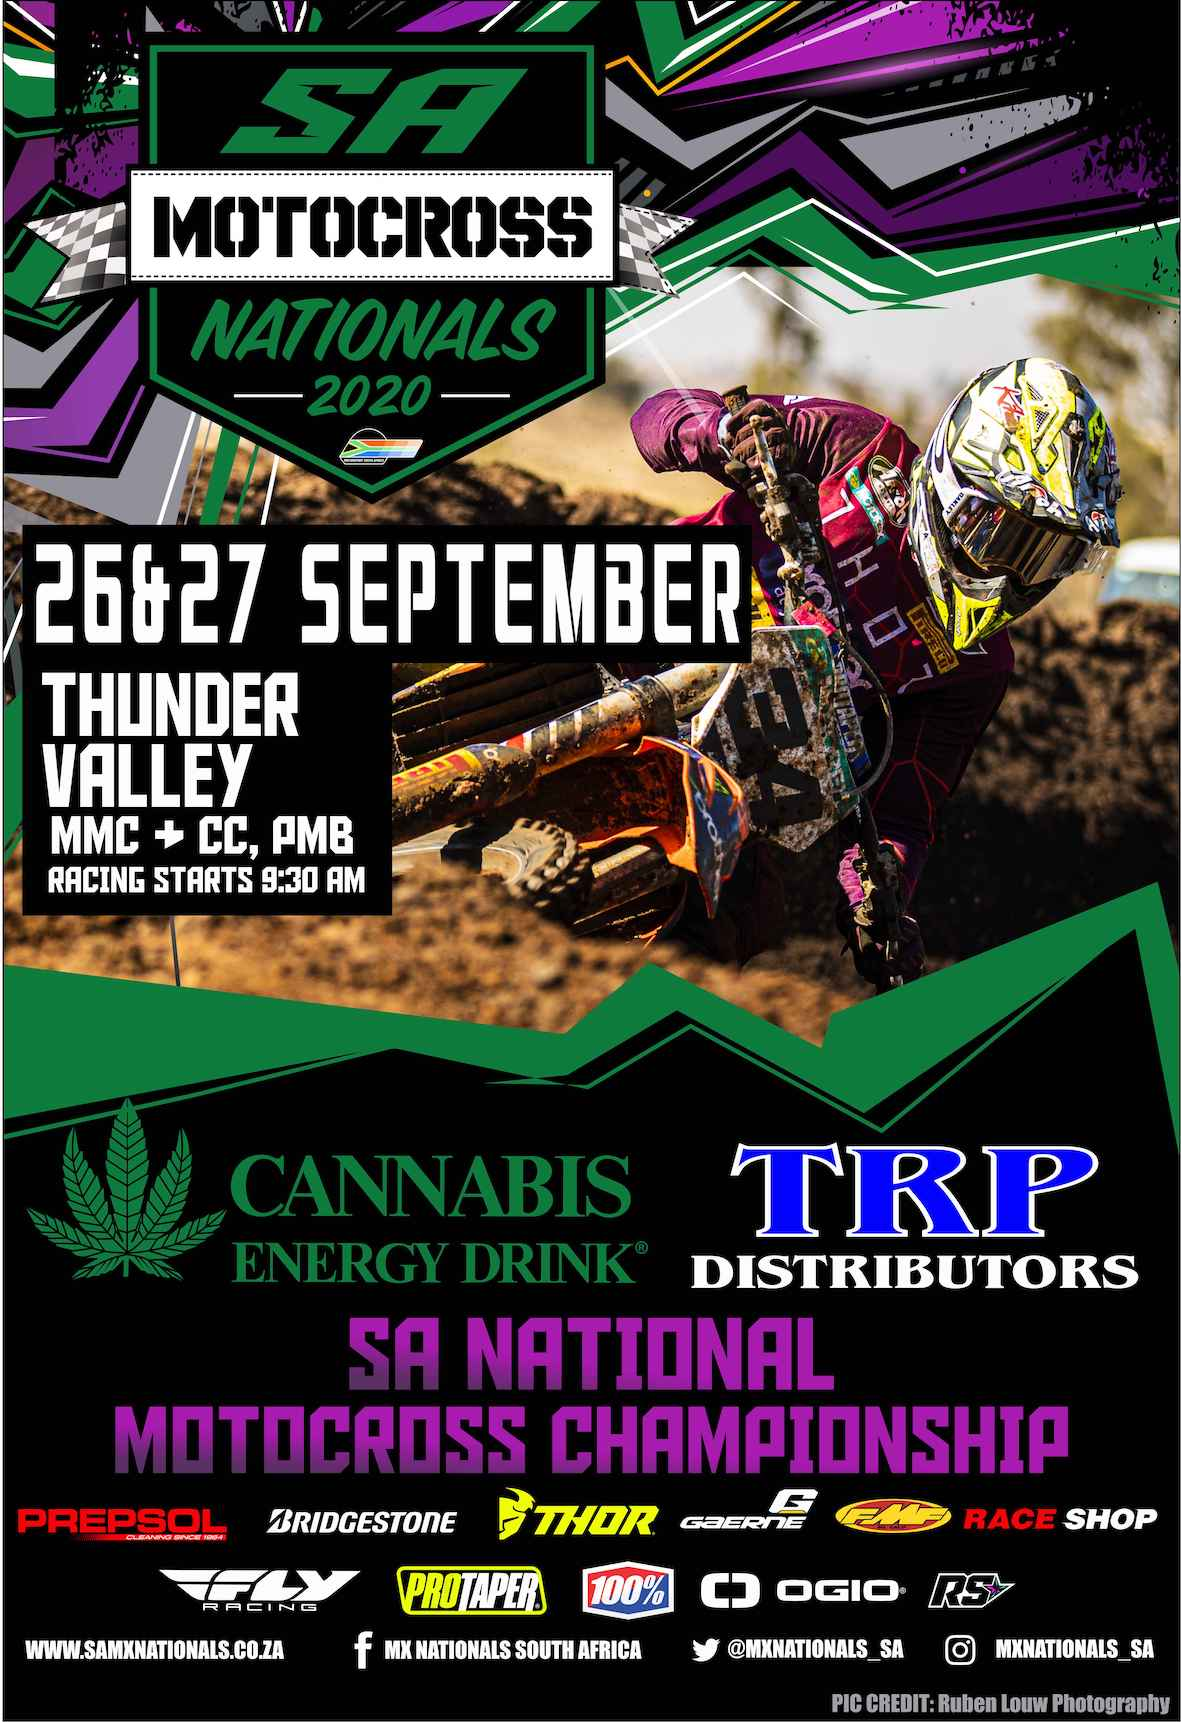 The 2020South African National Motocross Championshipreturns to action this weekend, 26 and 27 September, for in a double-header (Rounds 2 and 3) at Thunder Valley in Pietermaritzburg.